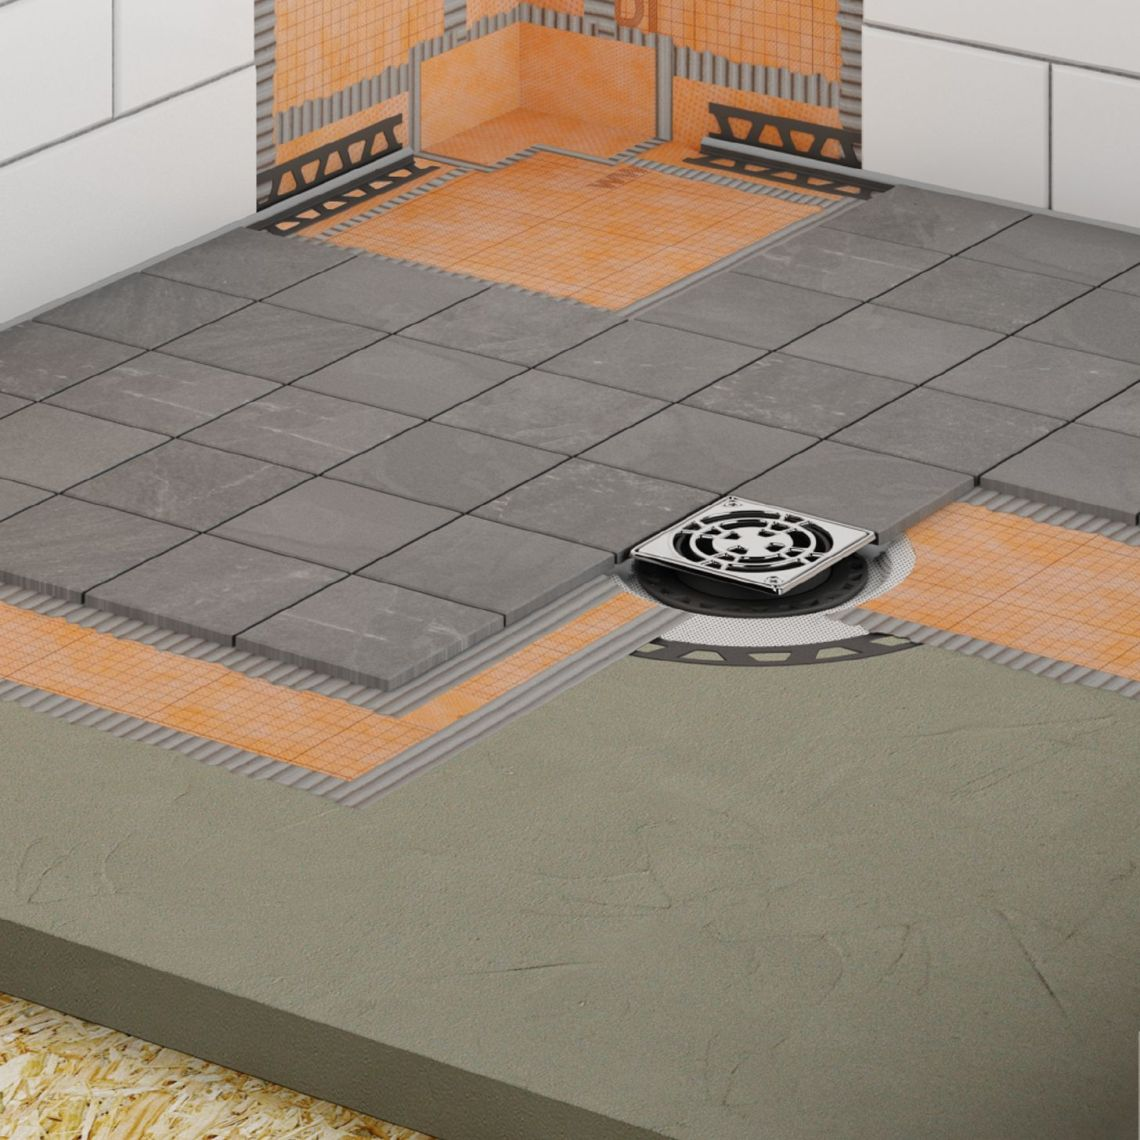 Image Result For How To Install A Shower Pan With Tile Walls